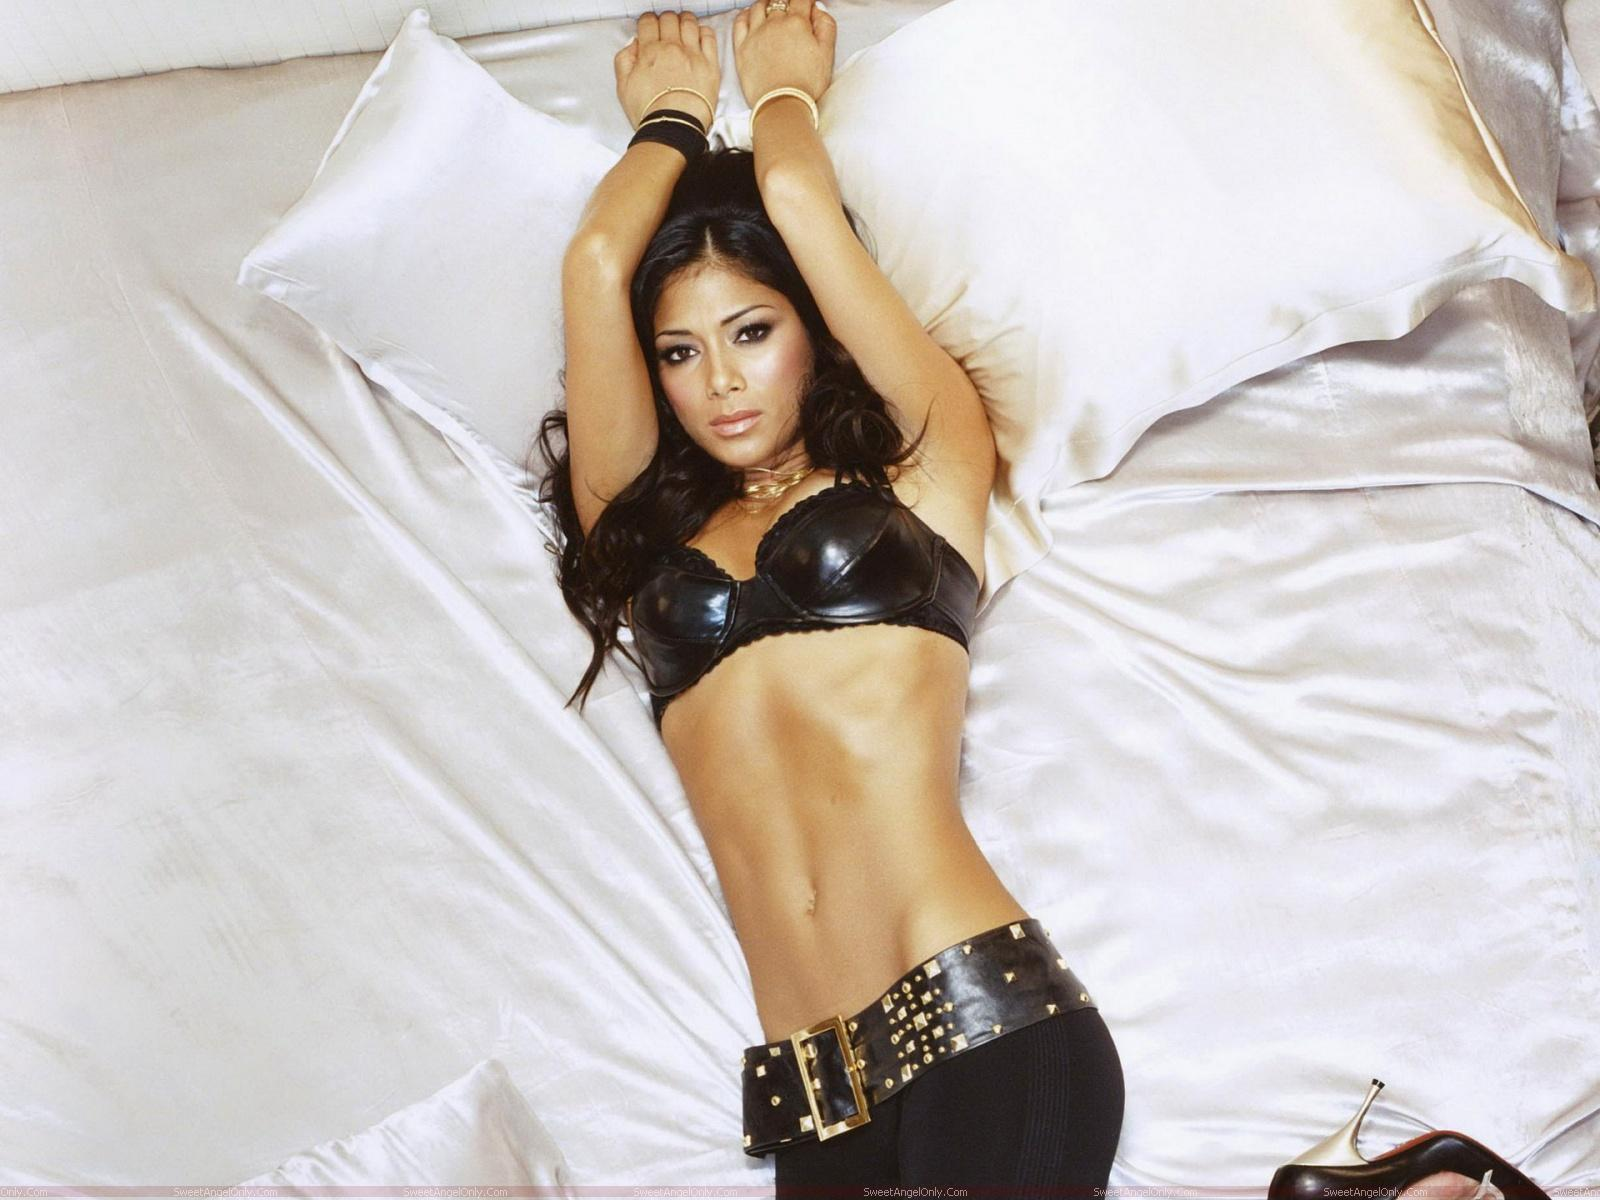 hottest celebrities 13 hd - photo #24